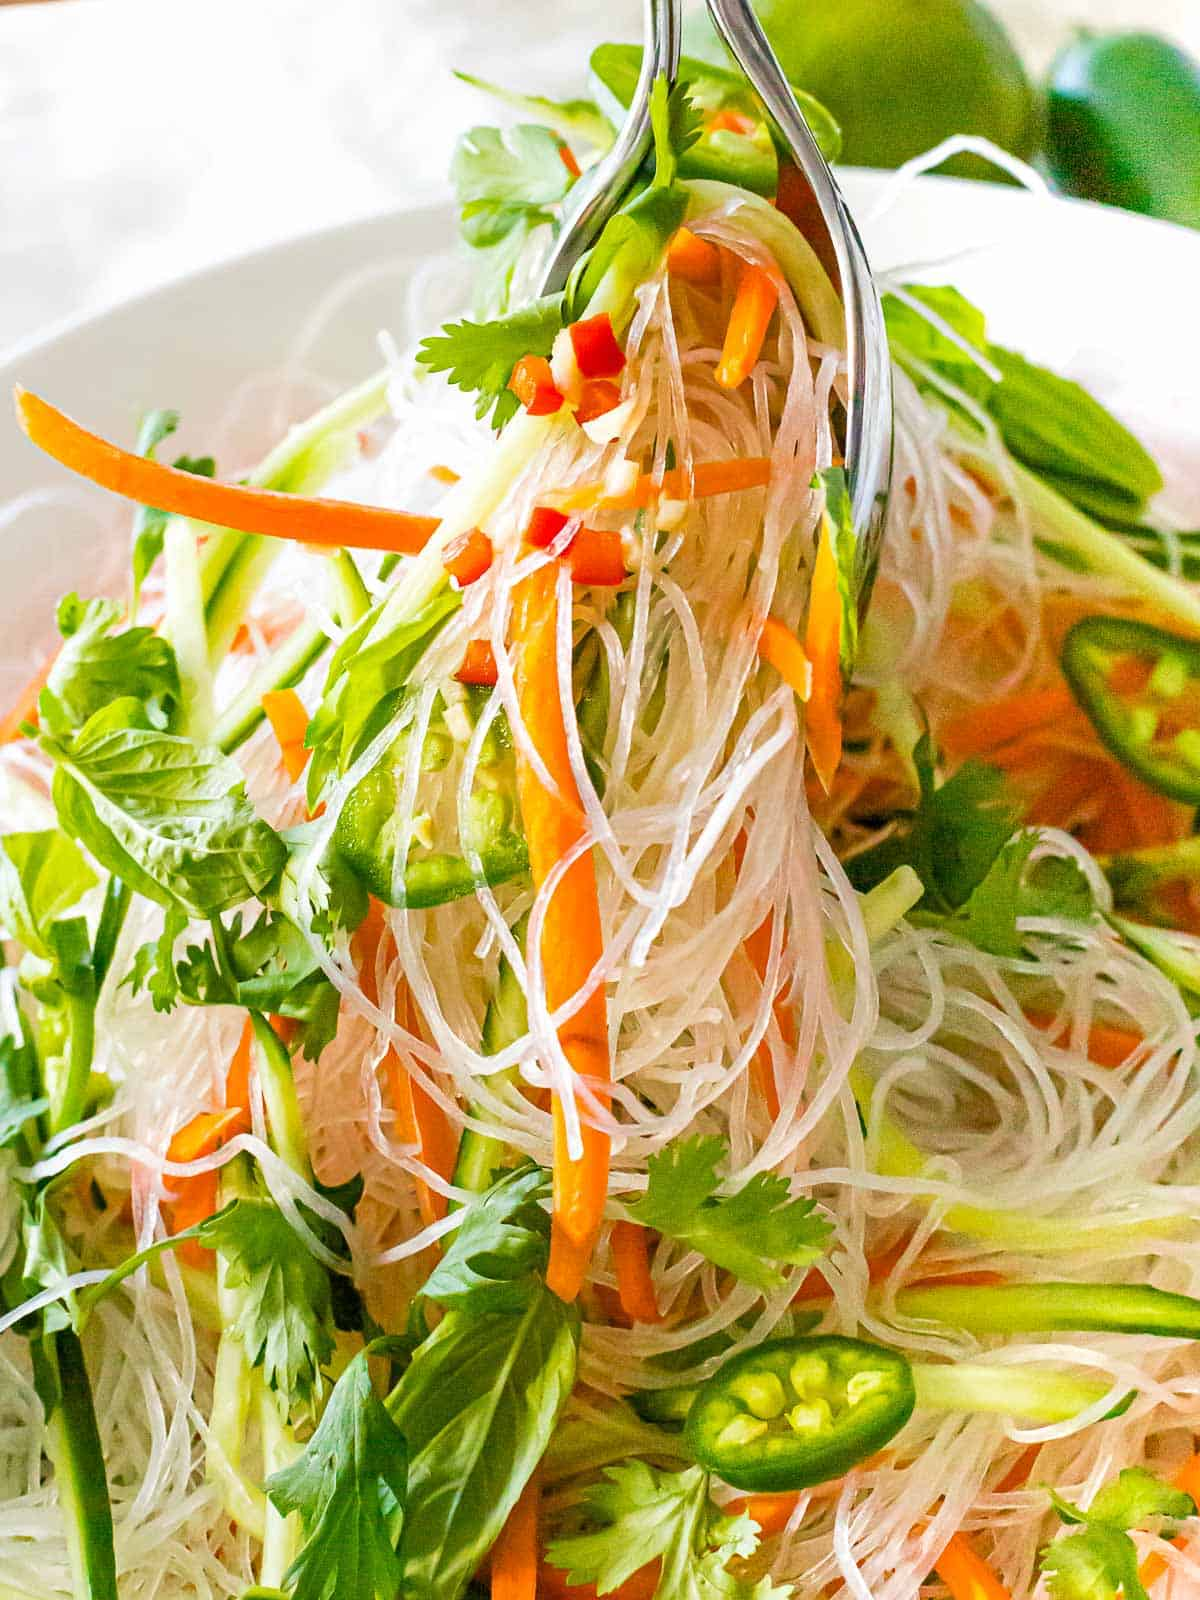 Vietnamese noodle salad with strips of carrot, parsley & basil leaves ad a slice of jalapeno.